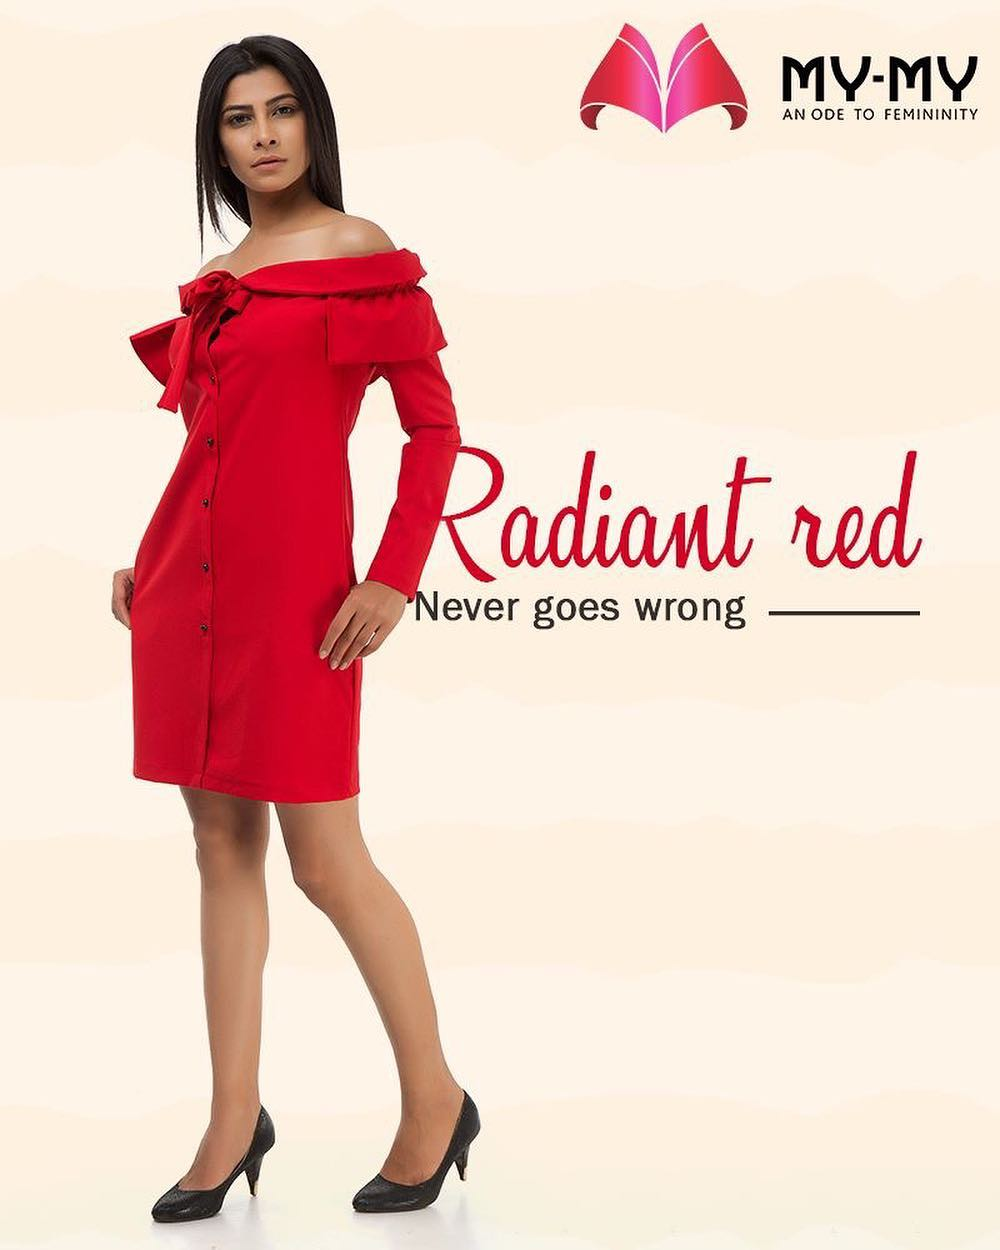 Isn't #RED always the right choice?  #SummerWardrobe #MyMy #MyMyAhmedabad #Fashion #Ahmedabad